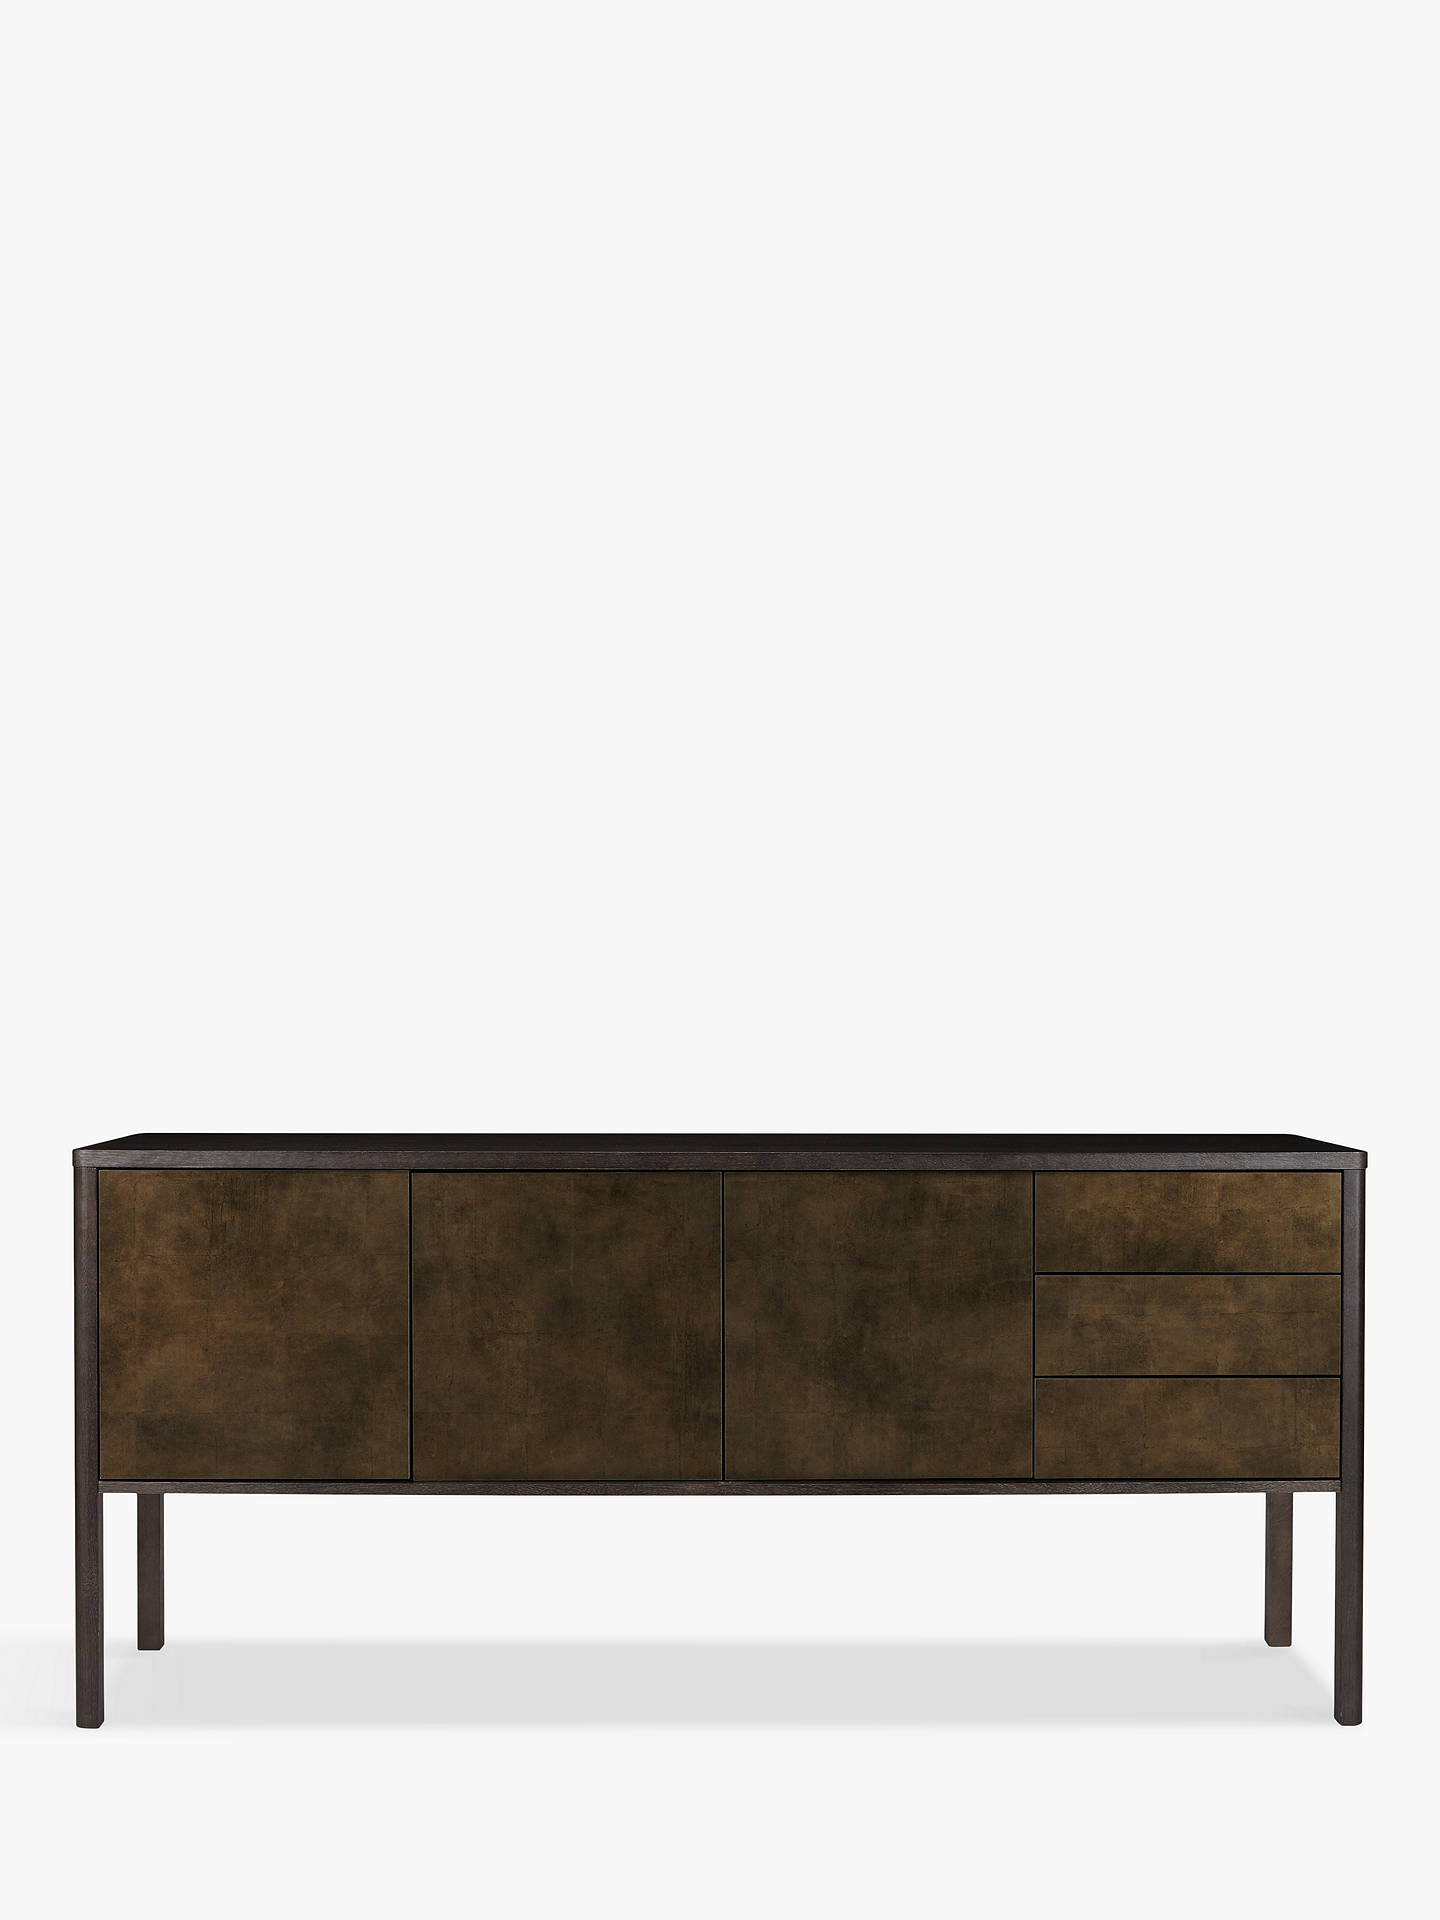 BuyJohn Lewis & Partners Lucente 3 Door/ 3 Drawer Cabinet Online at johnlewis.com